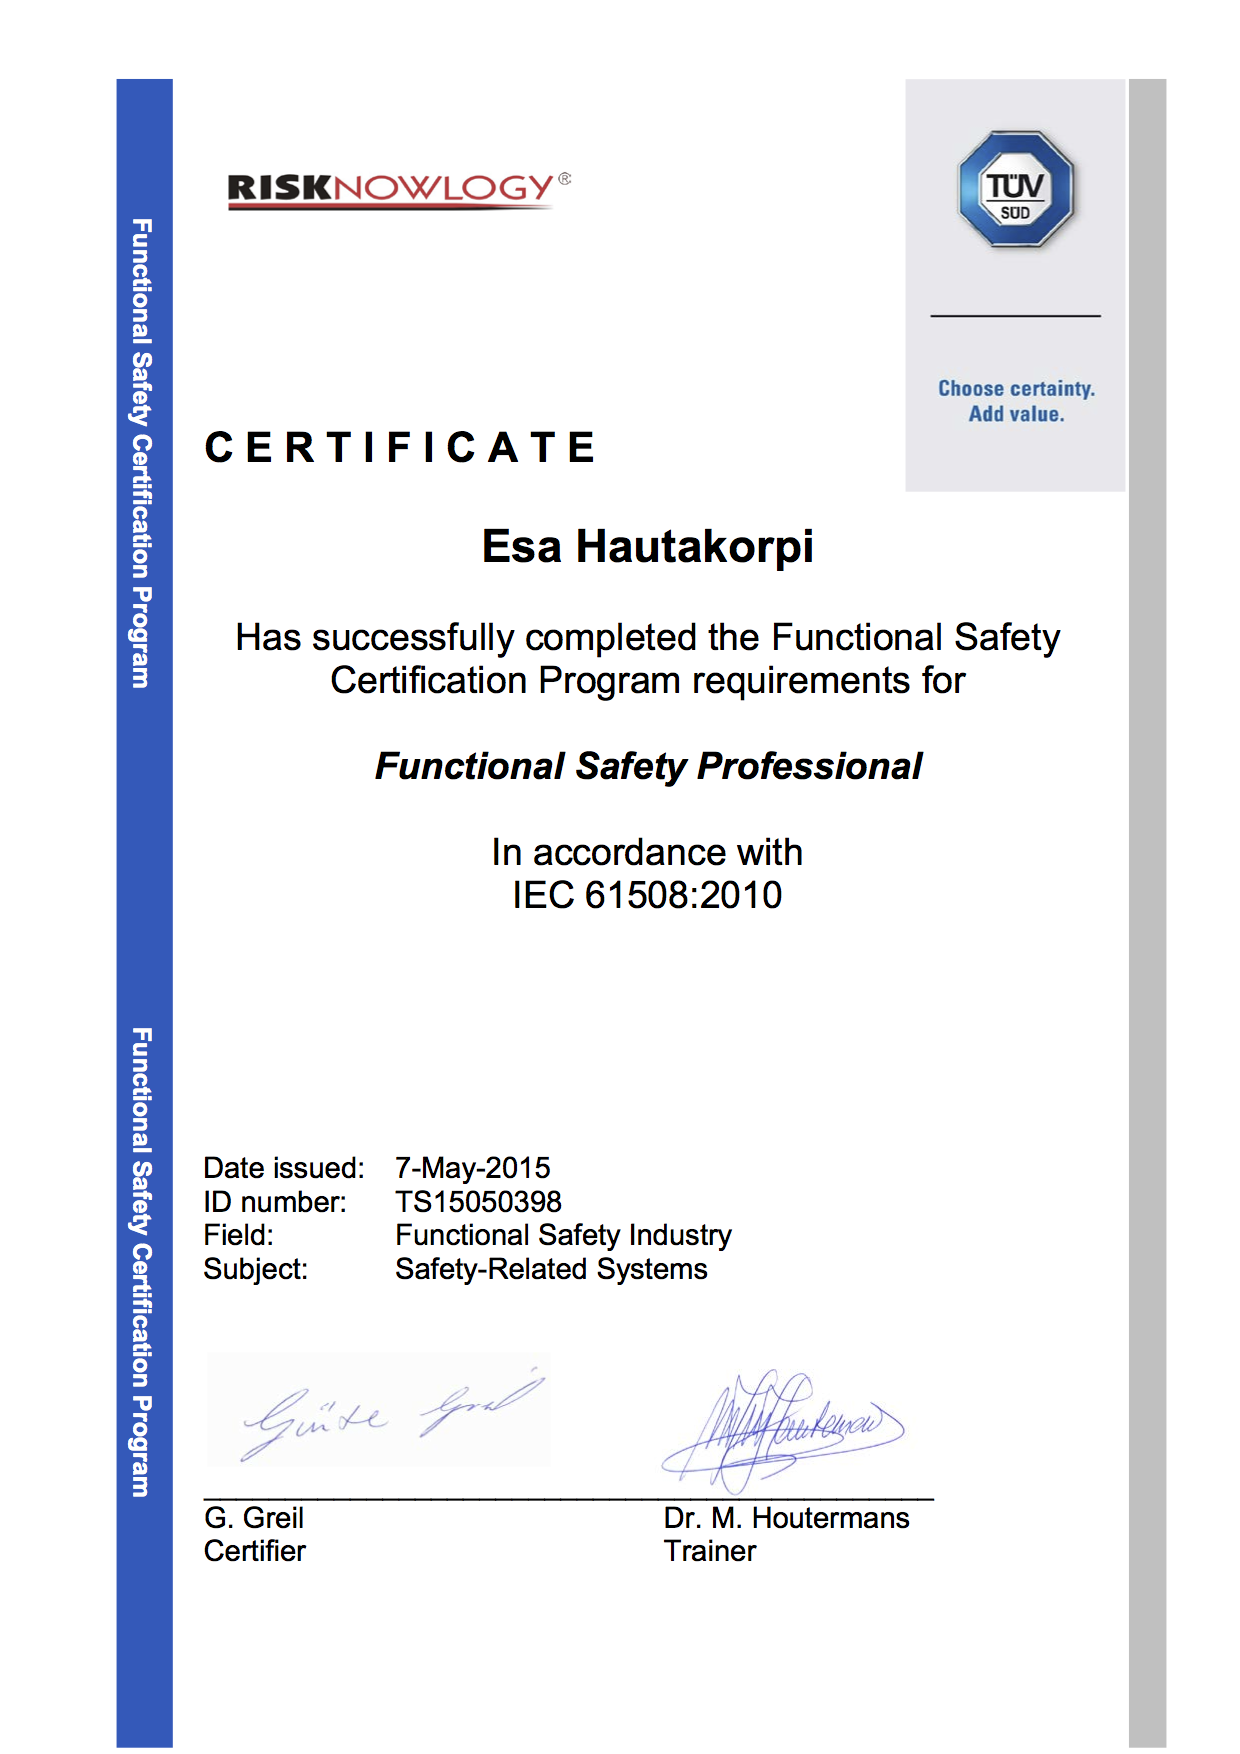 Safety Passport Of Esa Hautakorpi Risknowlogy